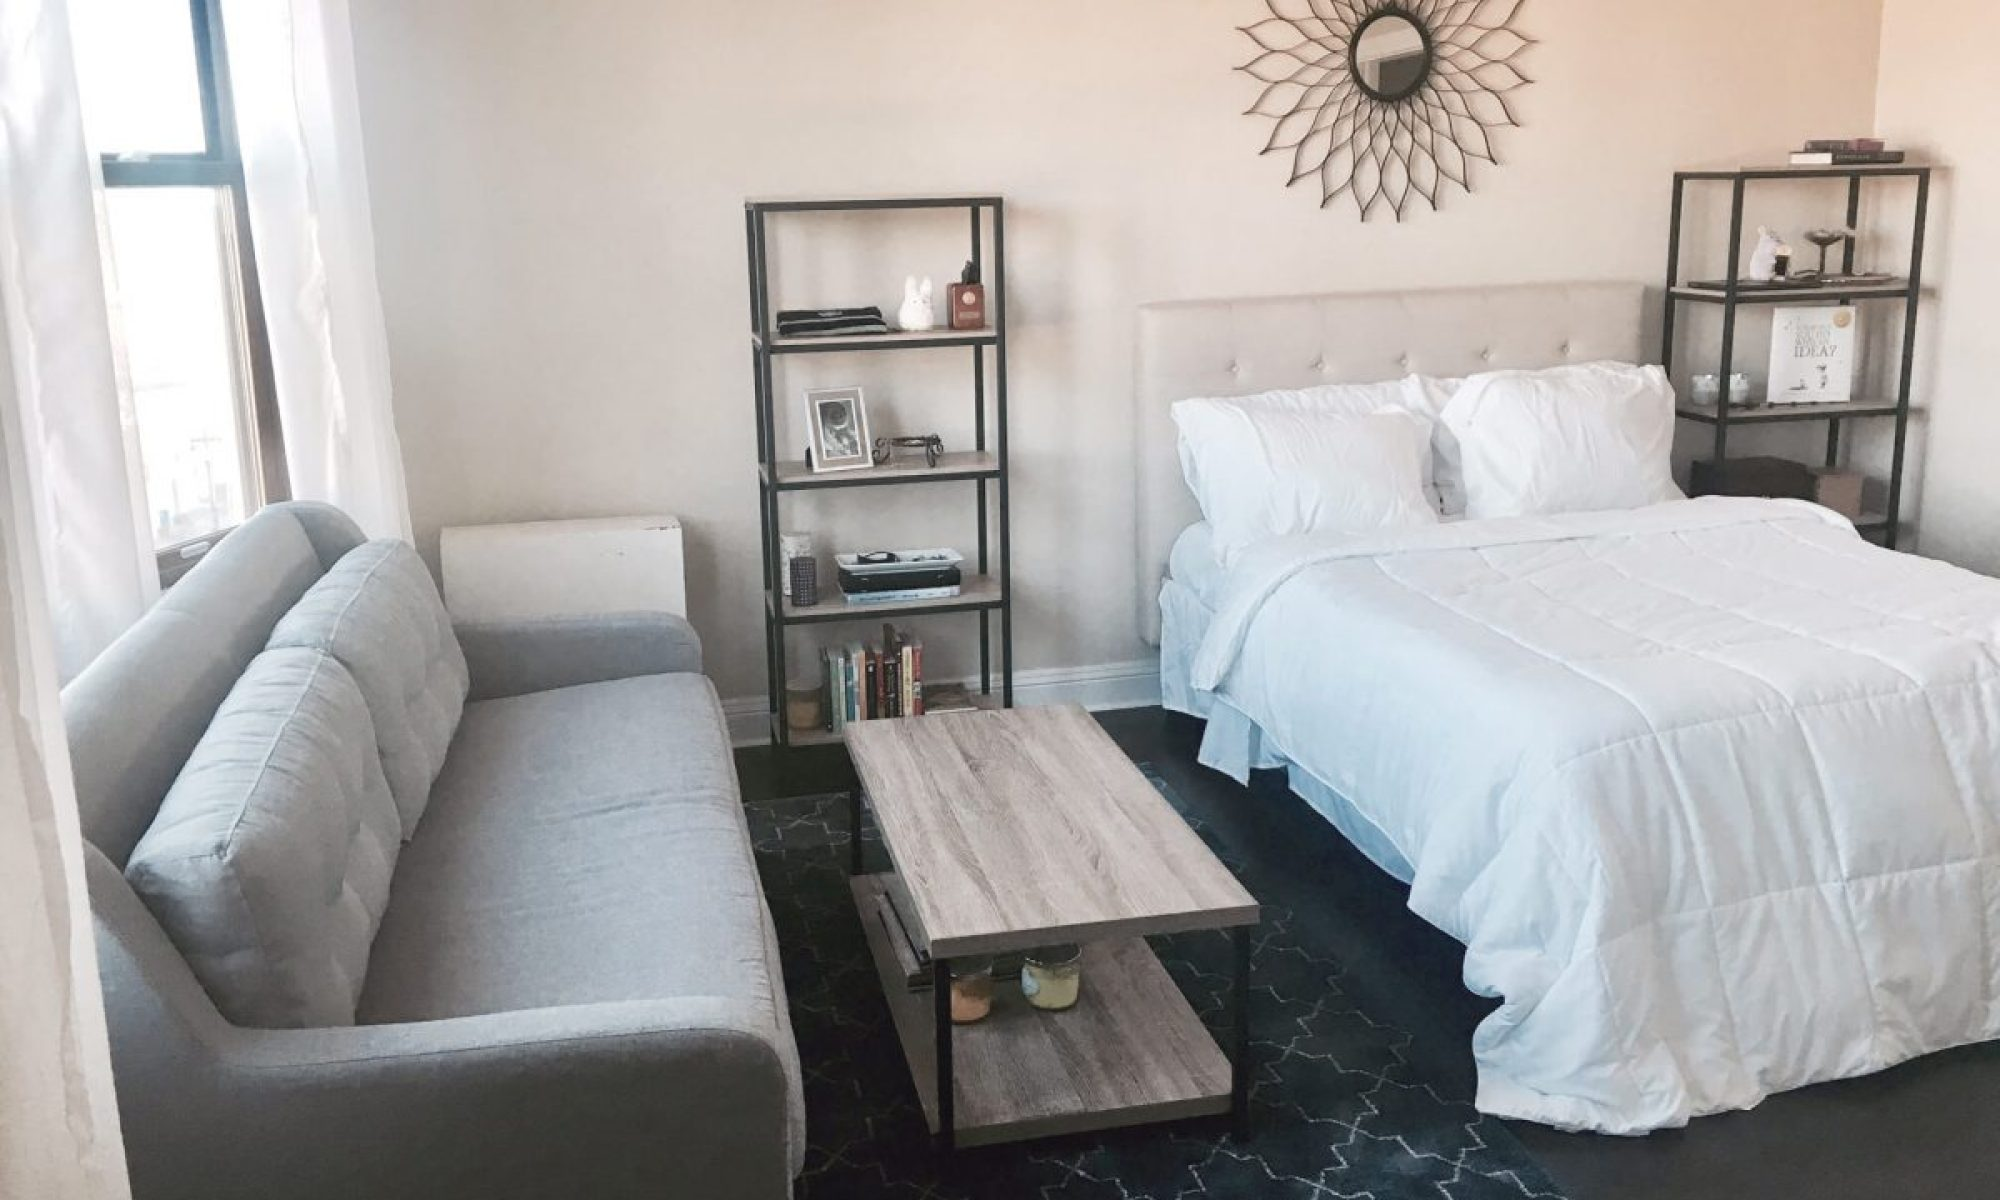 The Cost Of Furnishing An Apartment A Detailed Guide To Furnish